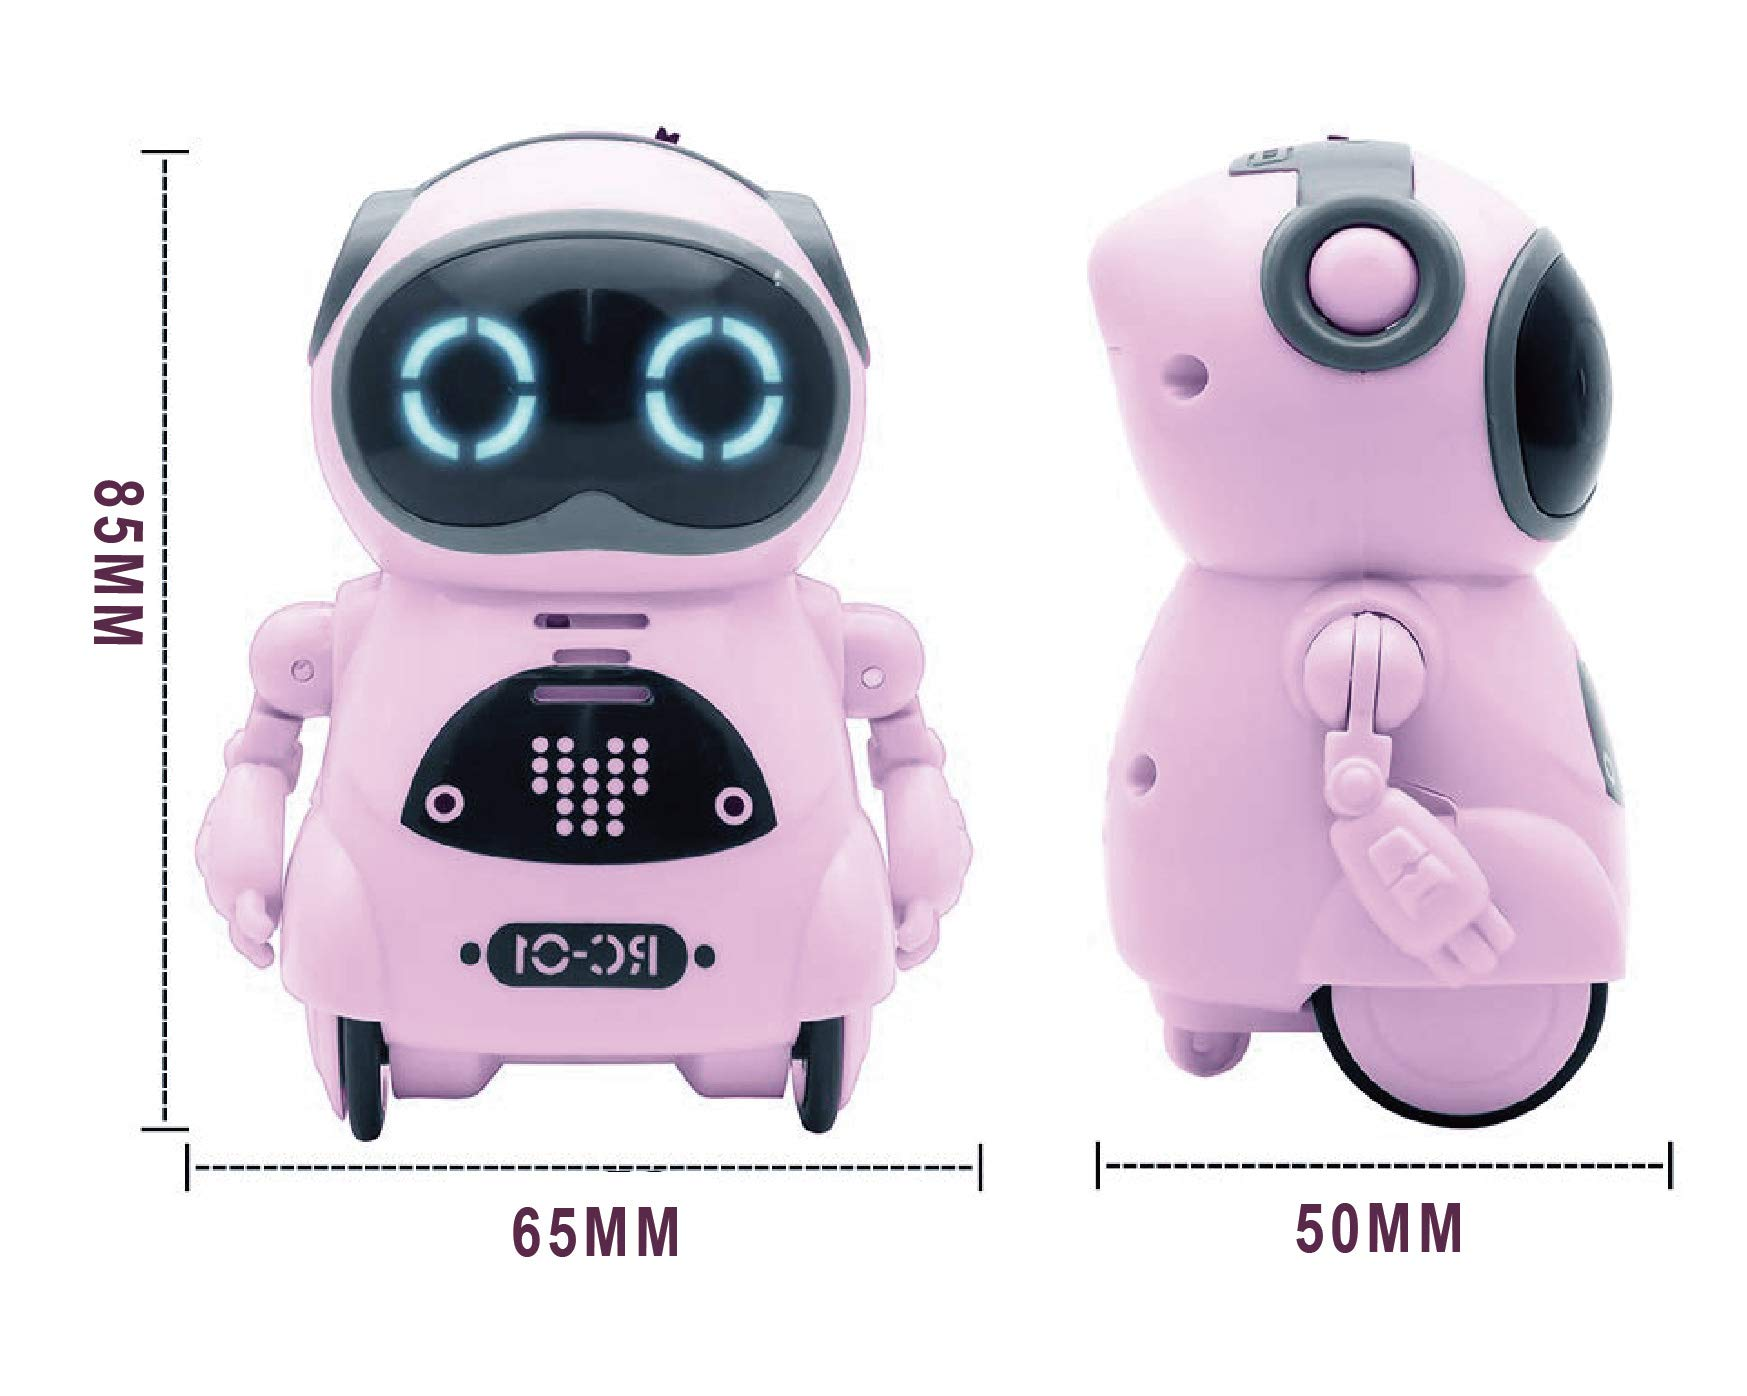 SPACE LION Educational Mini Pocket Robot for Kids Interactive Dialogue Conversation,Voice Control, Chat Record, Singing & Dancing-Pink by SPACE LION (Image #5)